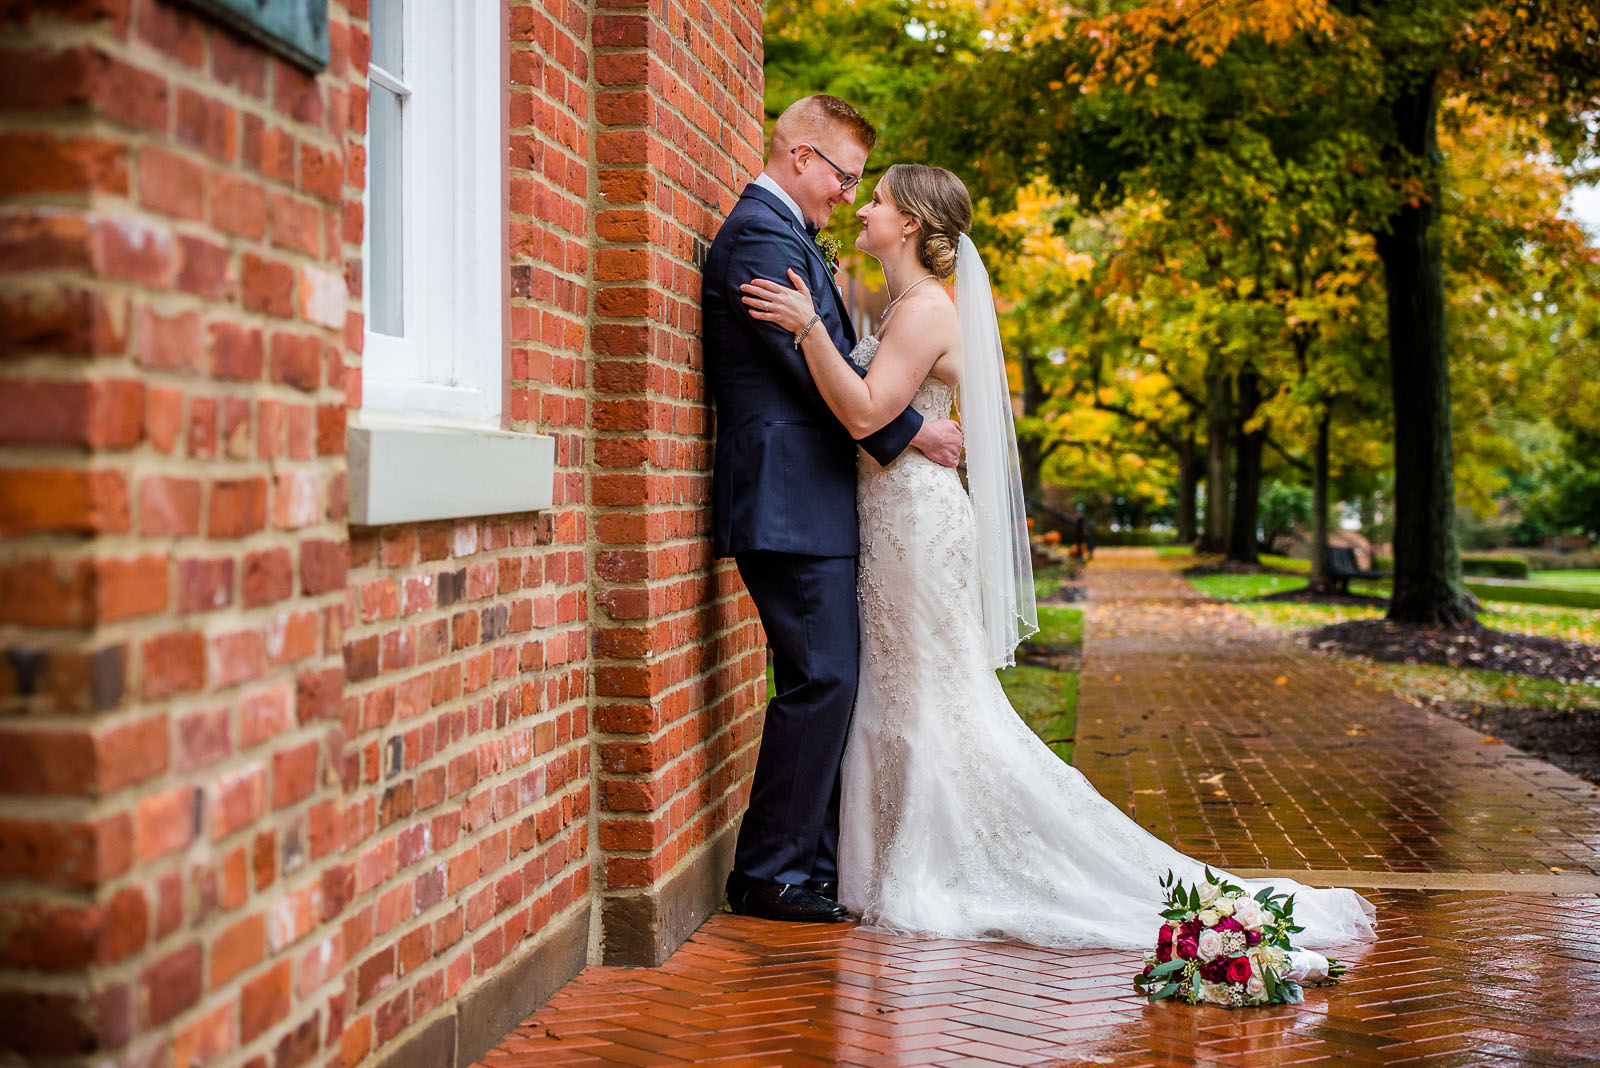 Eric_and_Christy_Photography_Blog_2018_Portraits-25